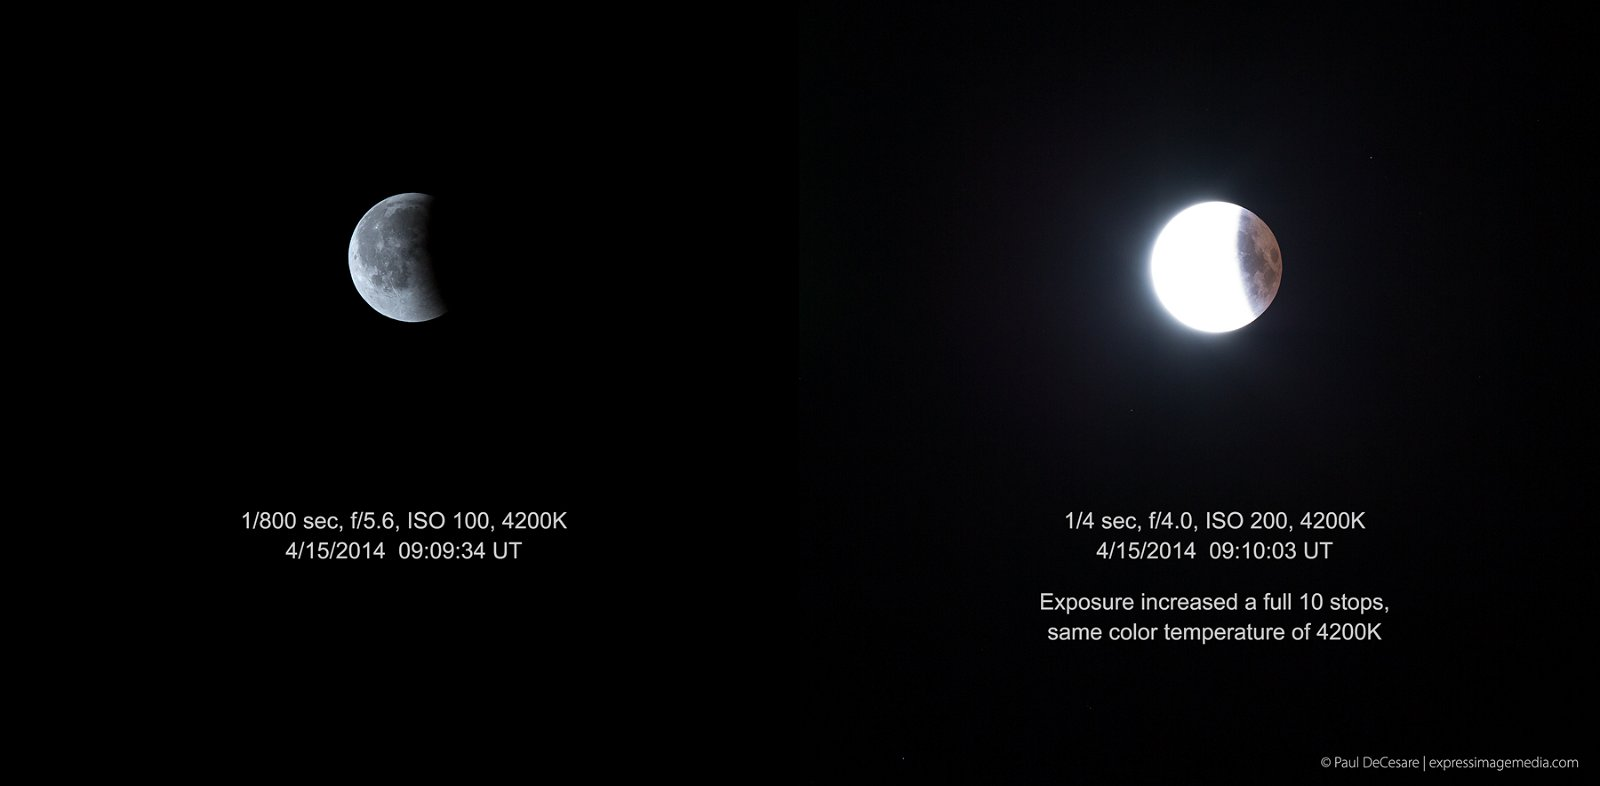 Exposure Comparison